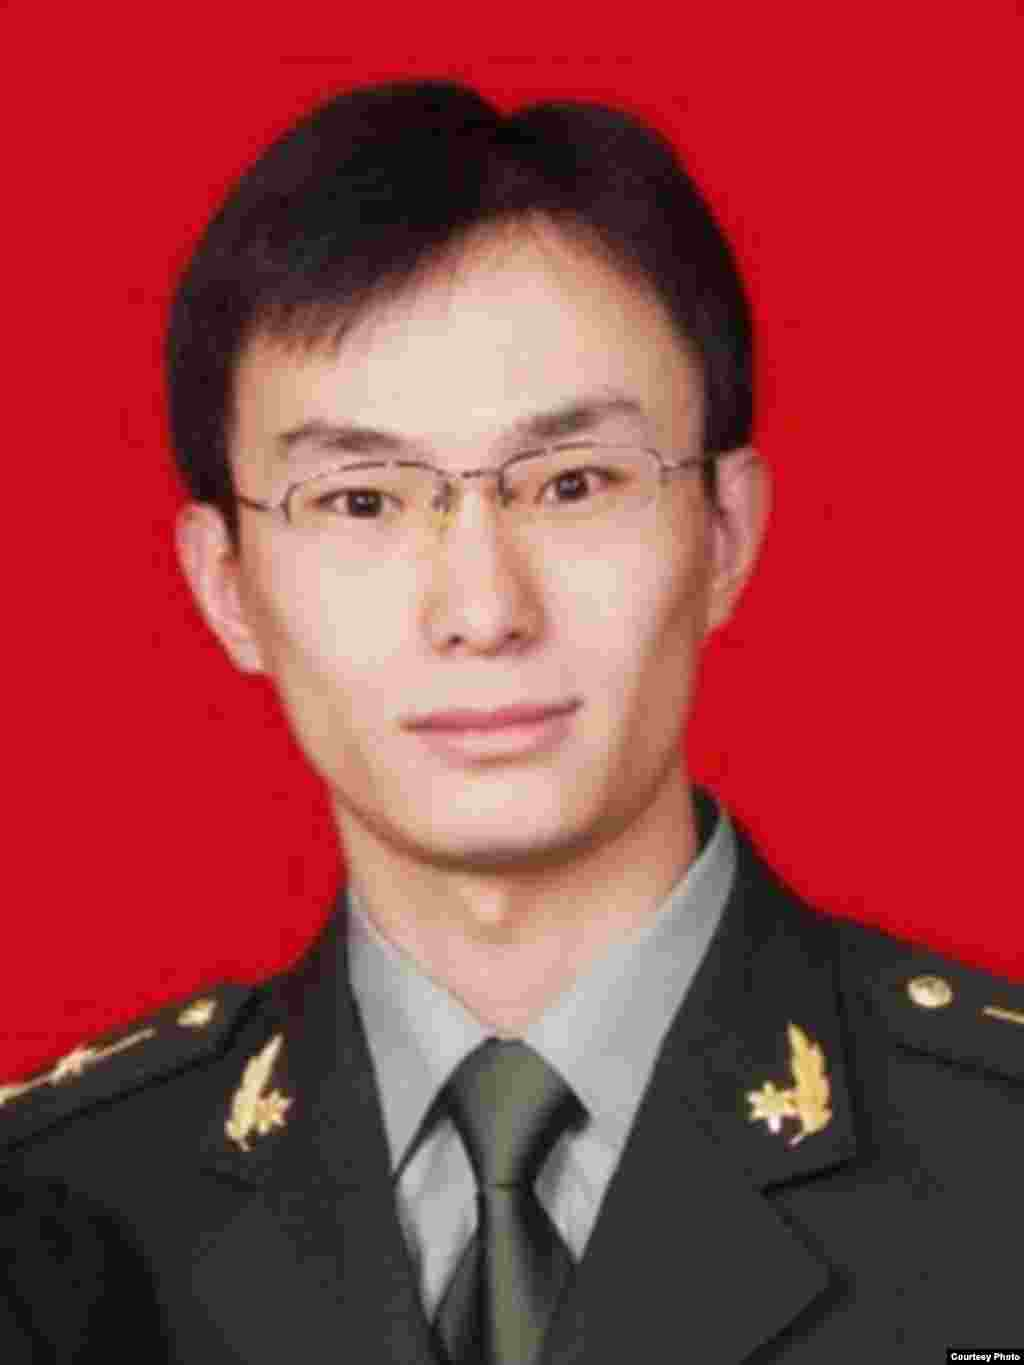 Gu Chunhui,from China's Third Department of the General Staff Department of the People's LIberation Army (3PLA), Second Bureau, Third Office, Military Unit Cover Designator (MUCD) 61398. (FBI photo)